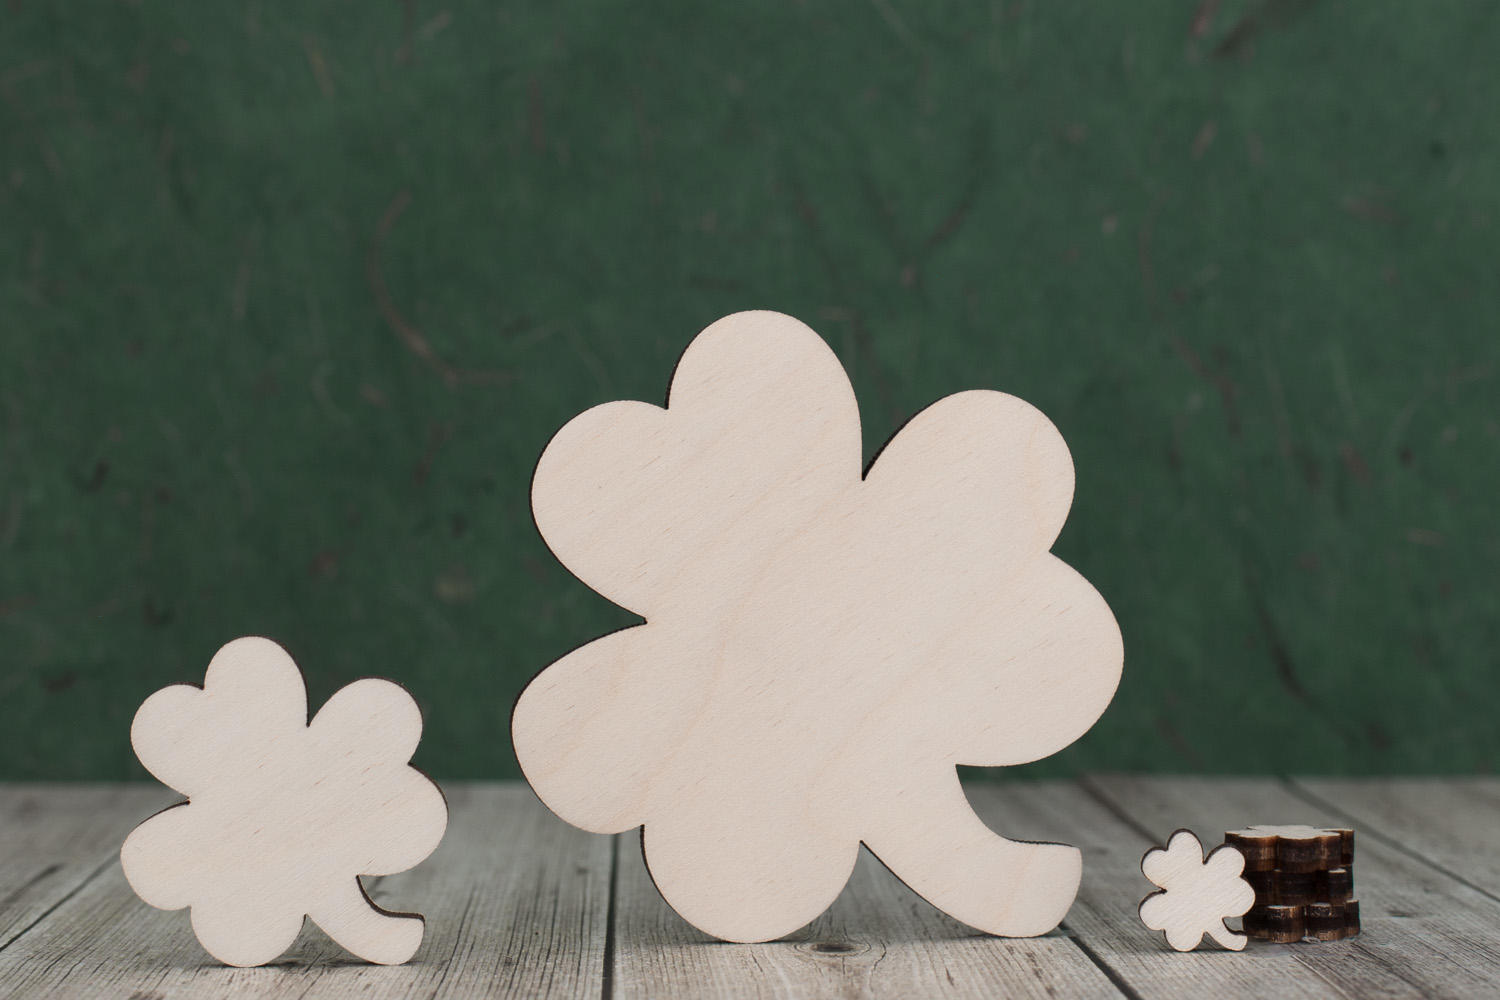 Plywood shamrock cutouts